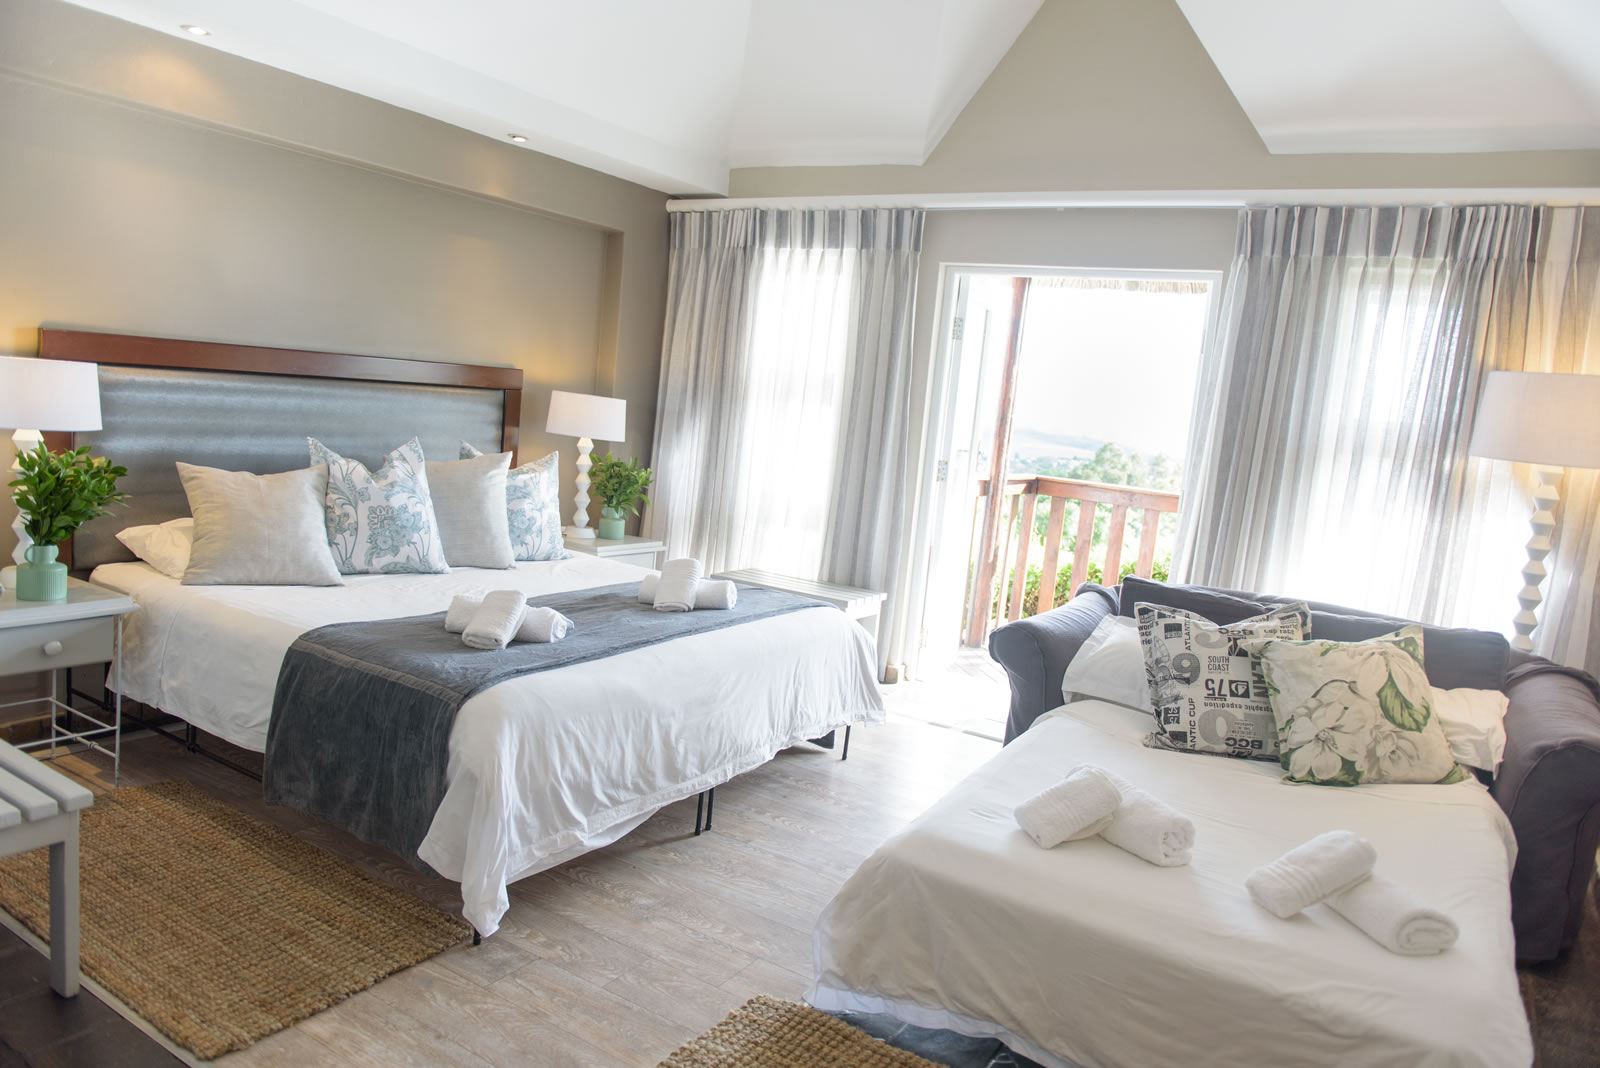 Whalesong Hotel & Spa Family room Accommodation in Plettenberg Bay